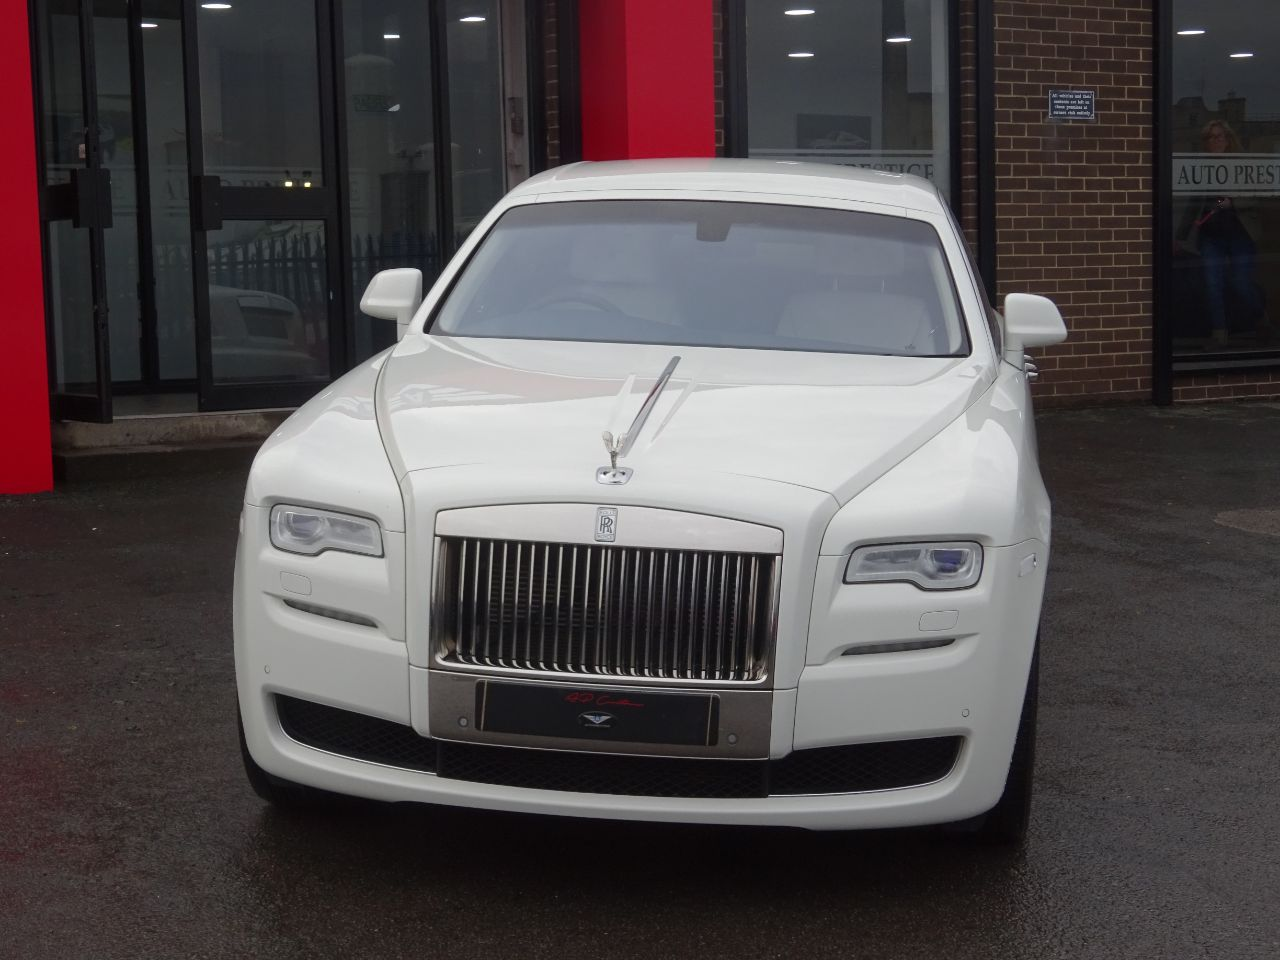 Rolls Royce Ghost 6.6 II 4dr Auto 5 YEAR SERVICE PLAN 4 YEAR WARRANTY AS NEW Saloon Petrol White